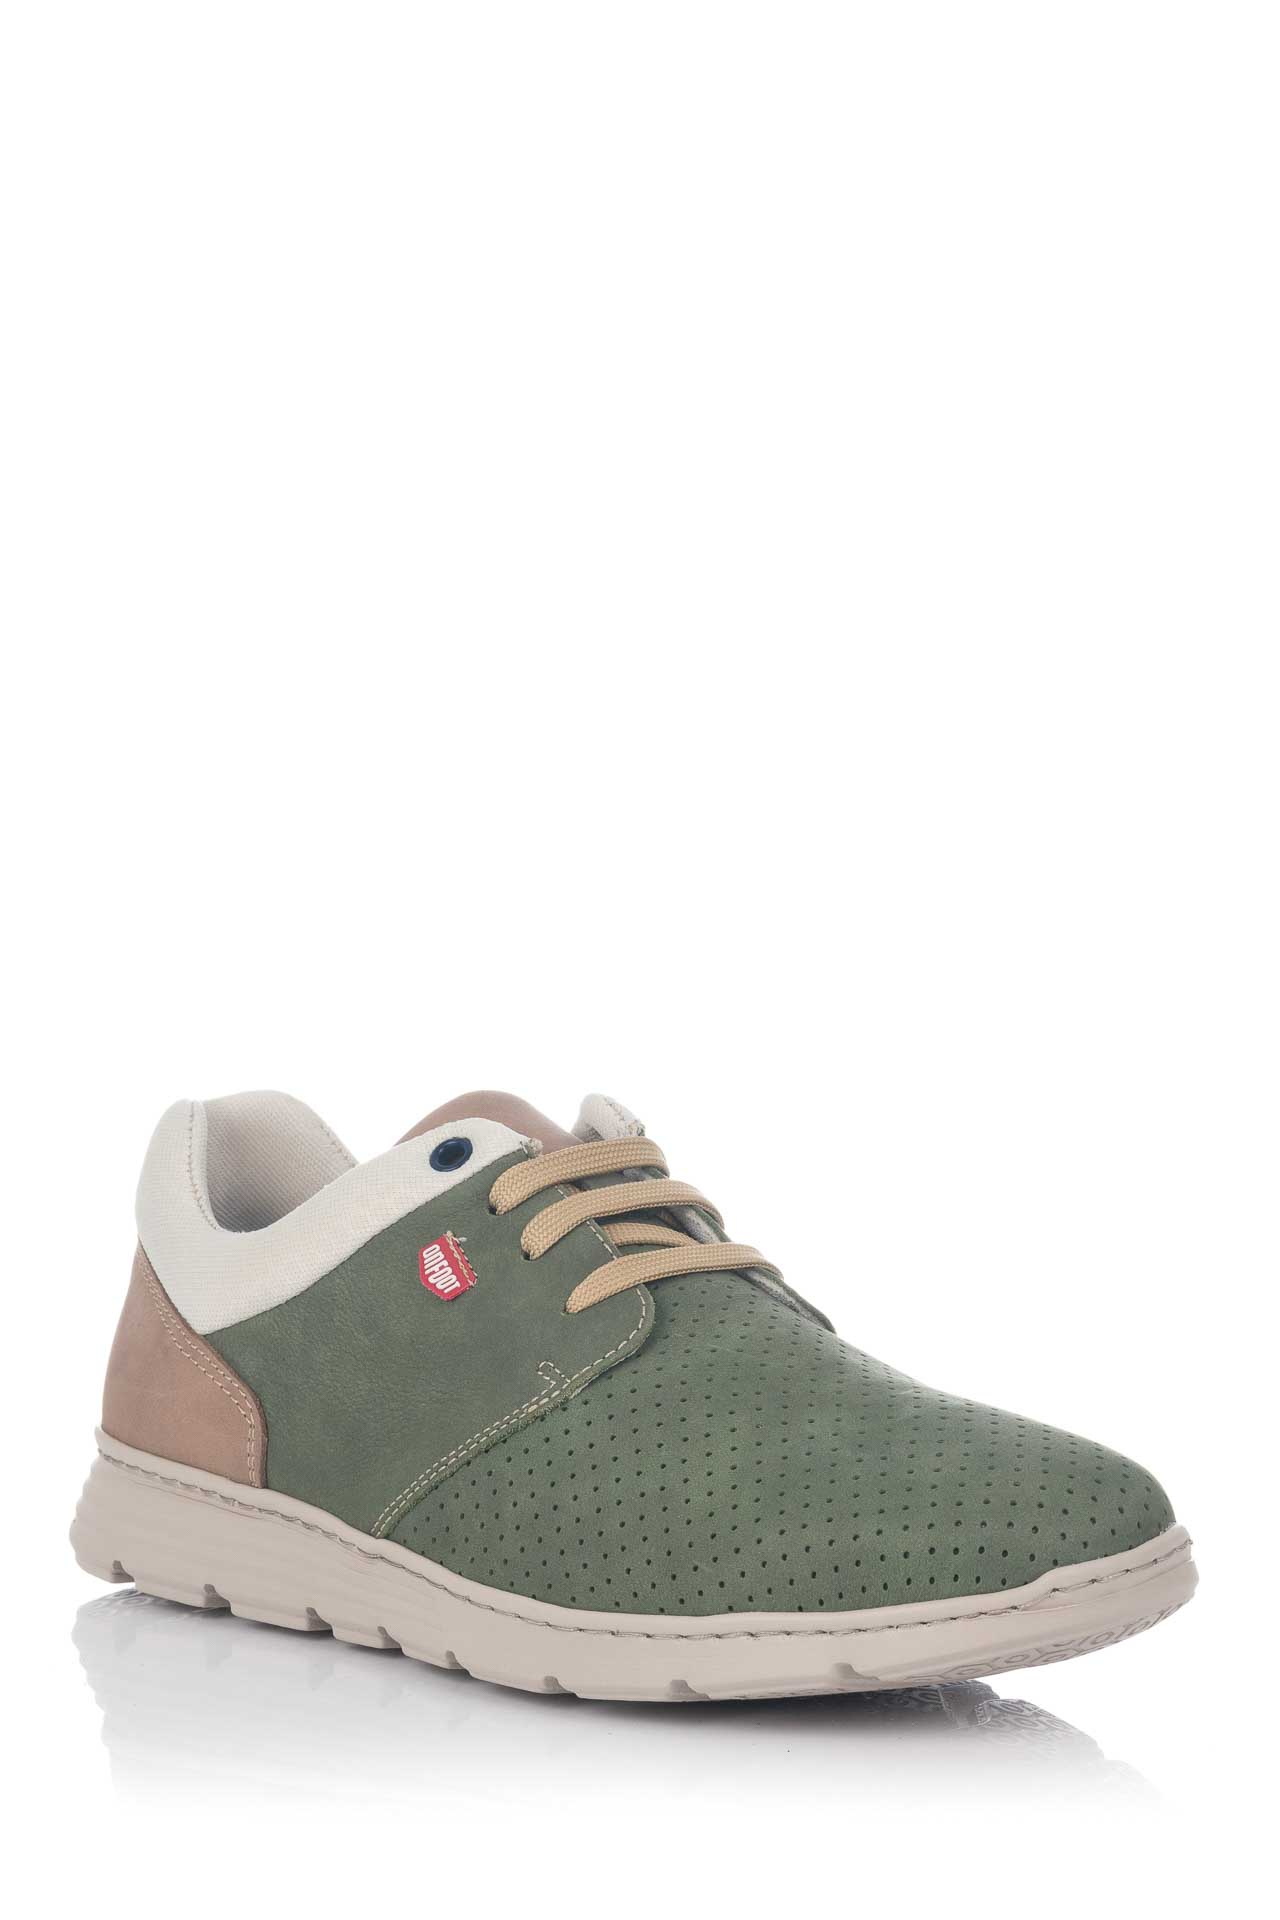 Zapatos On Foot 3500 verde